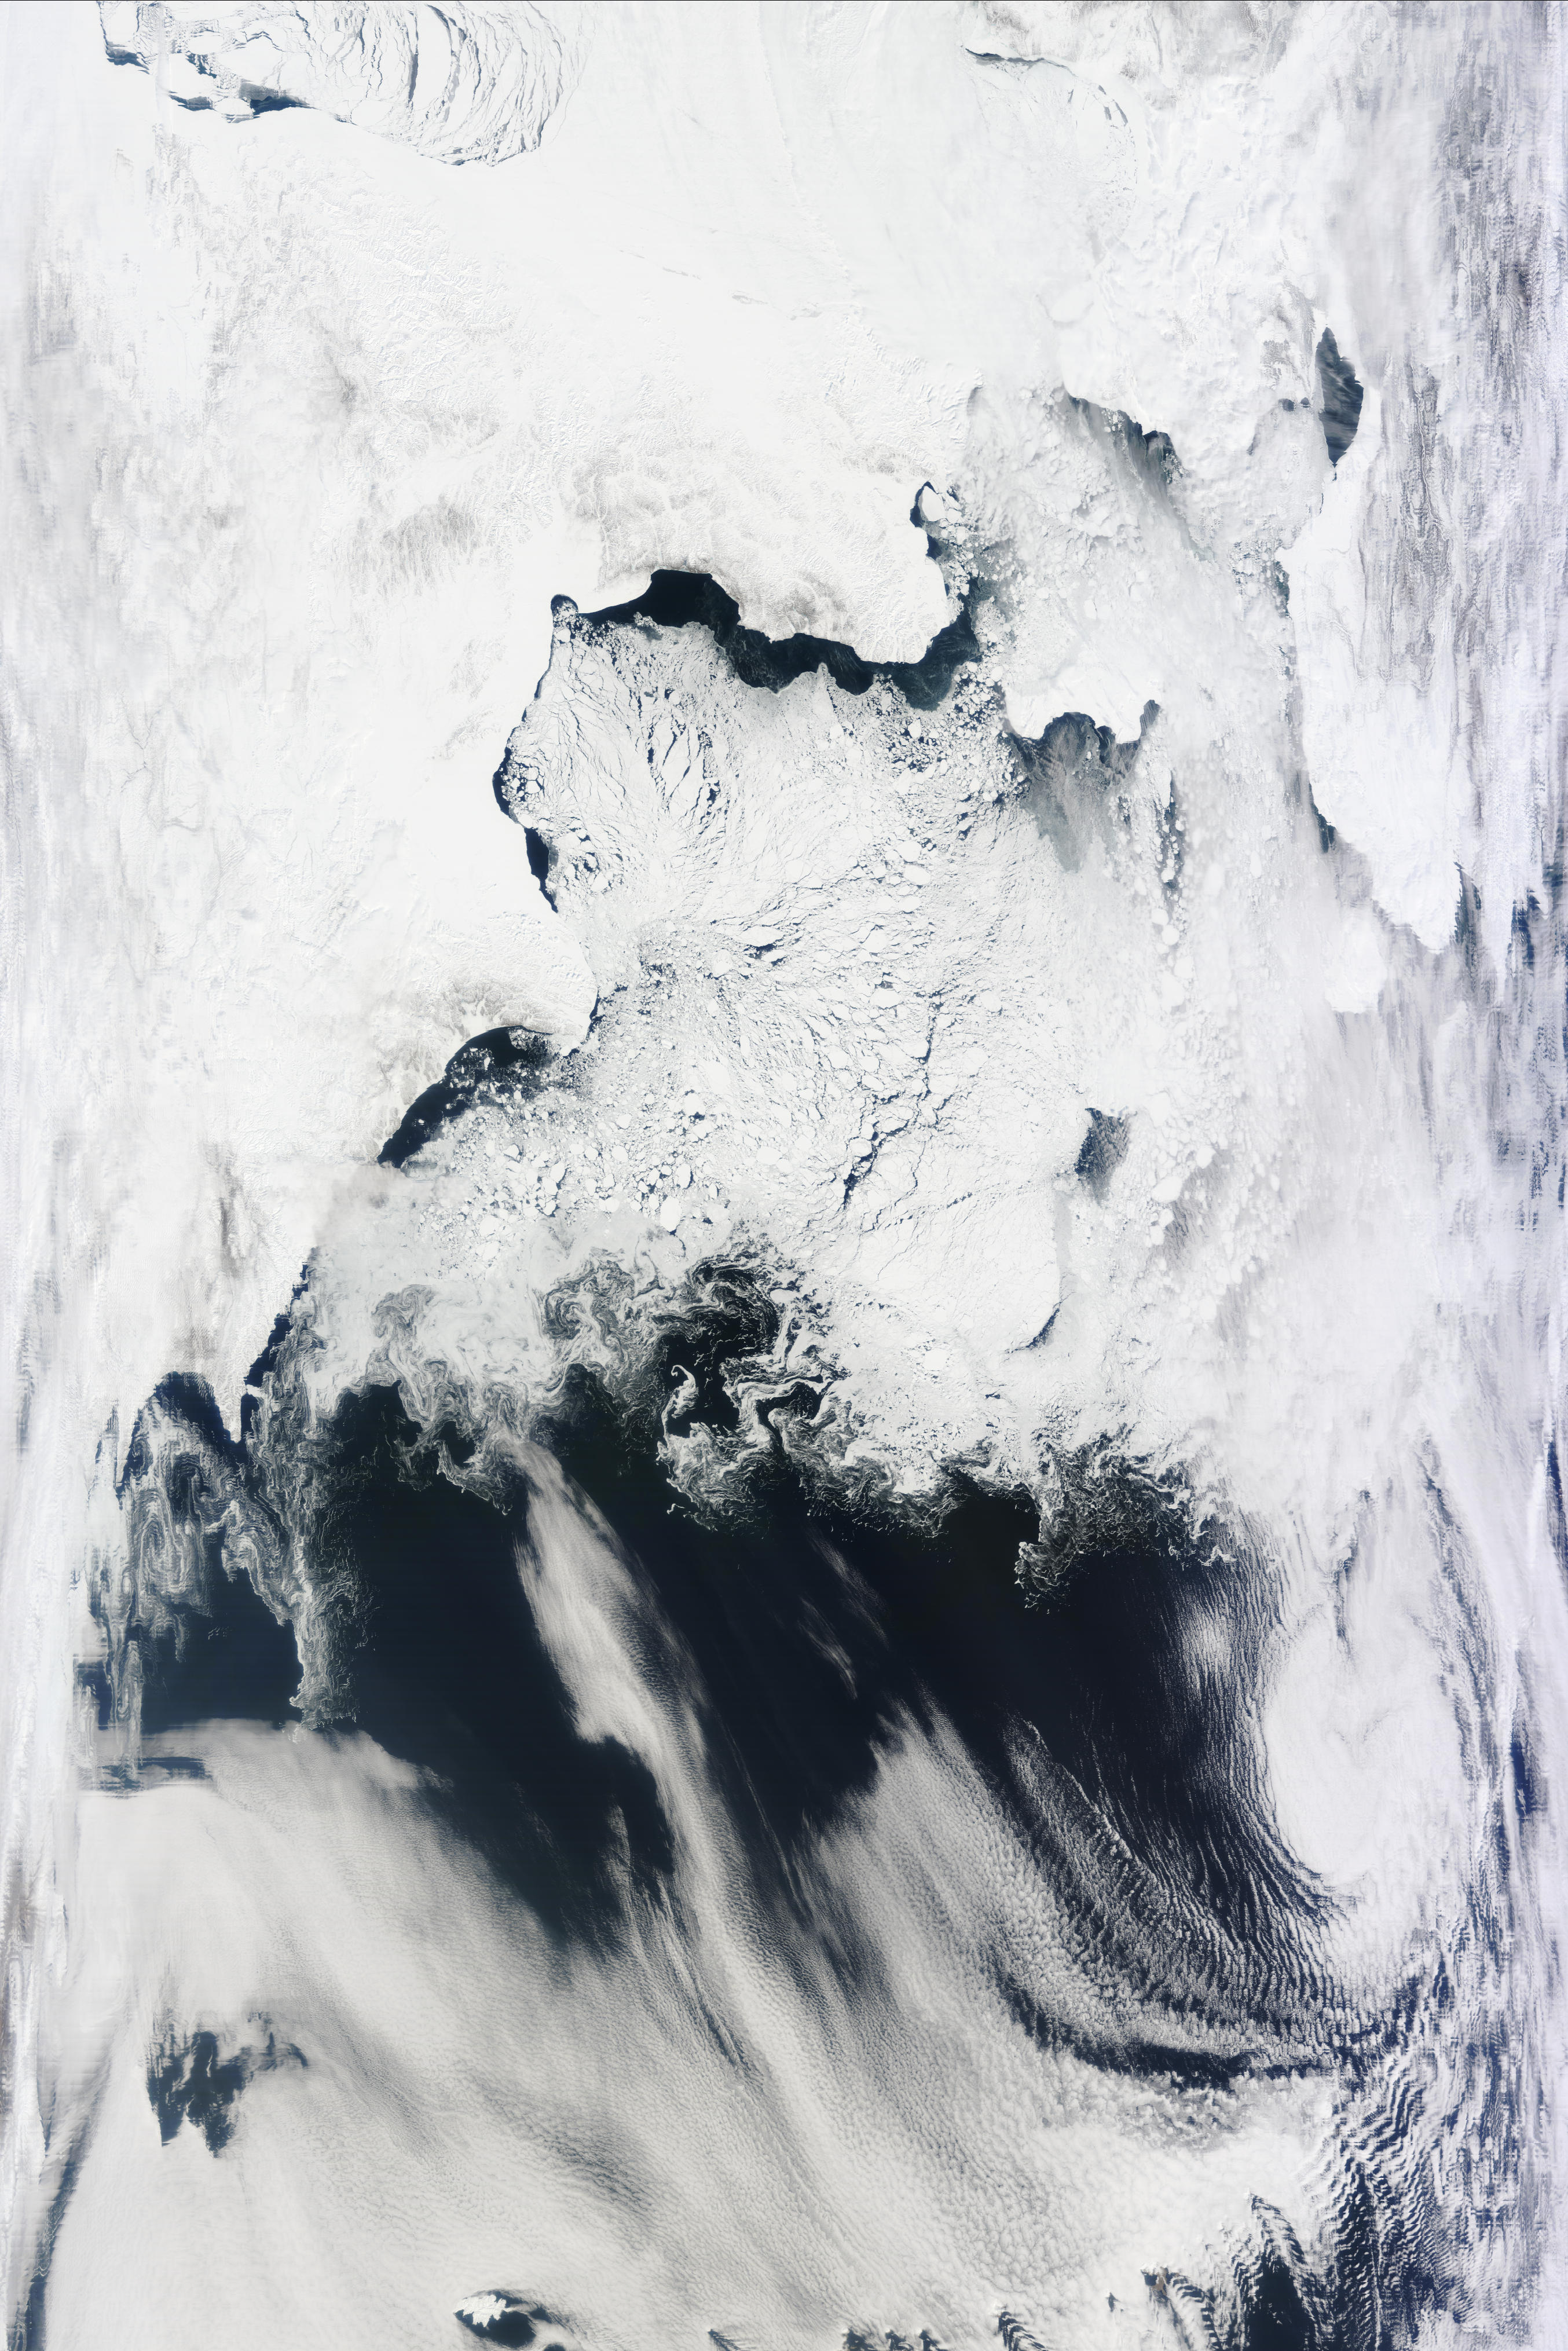 Bering Sea (Bering Straight and St. Lawrence Island in top-right quadrant)